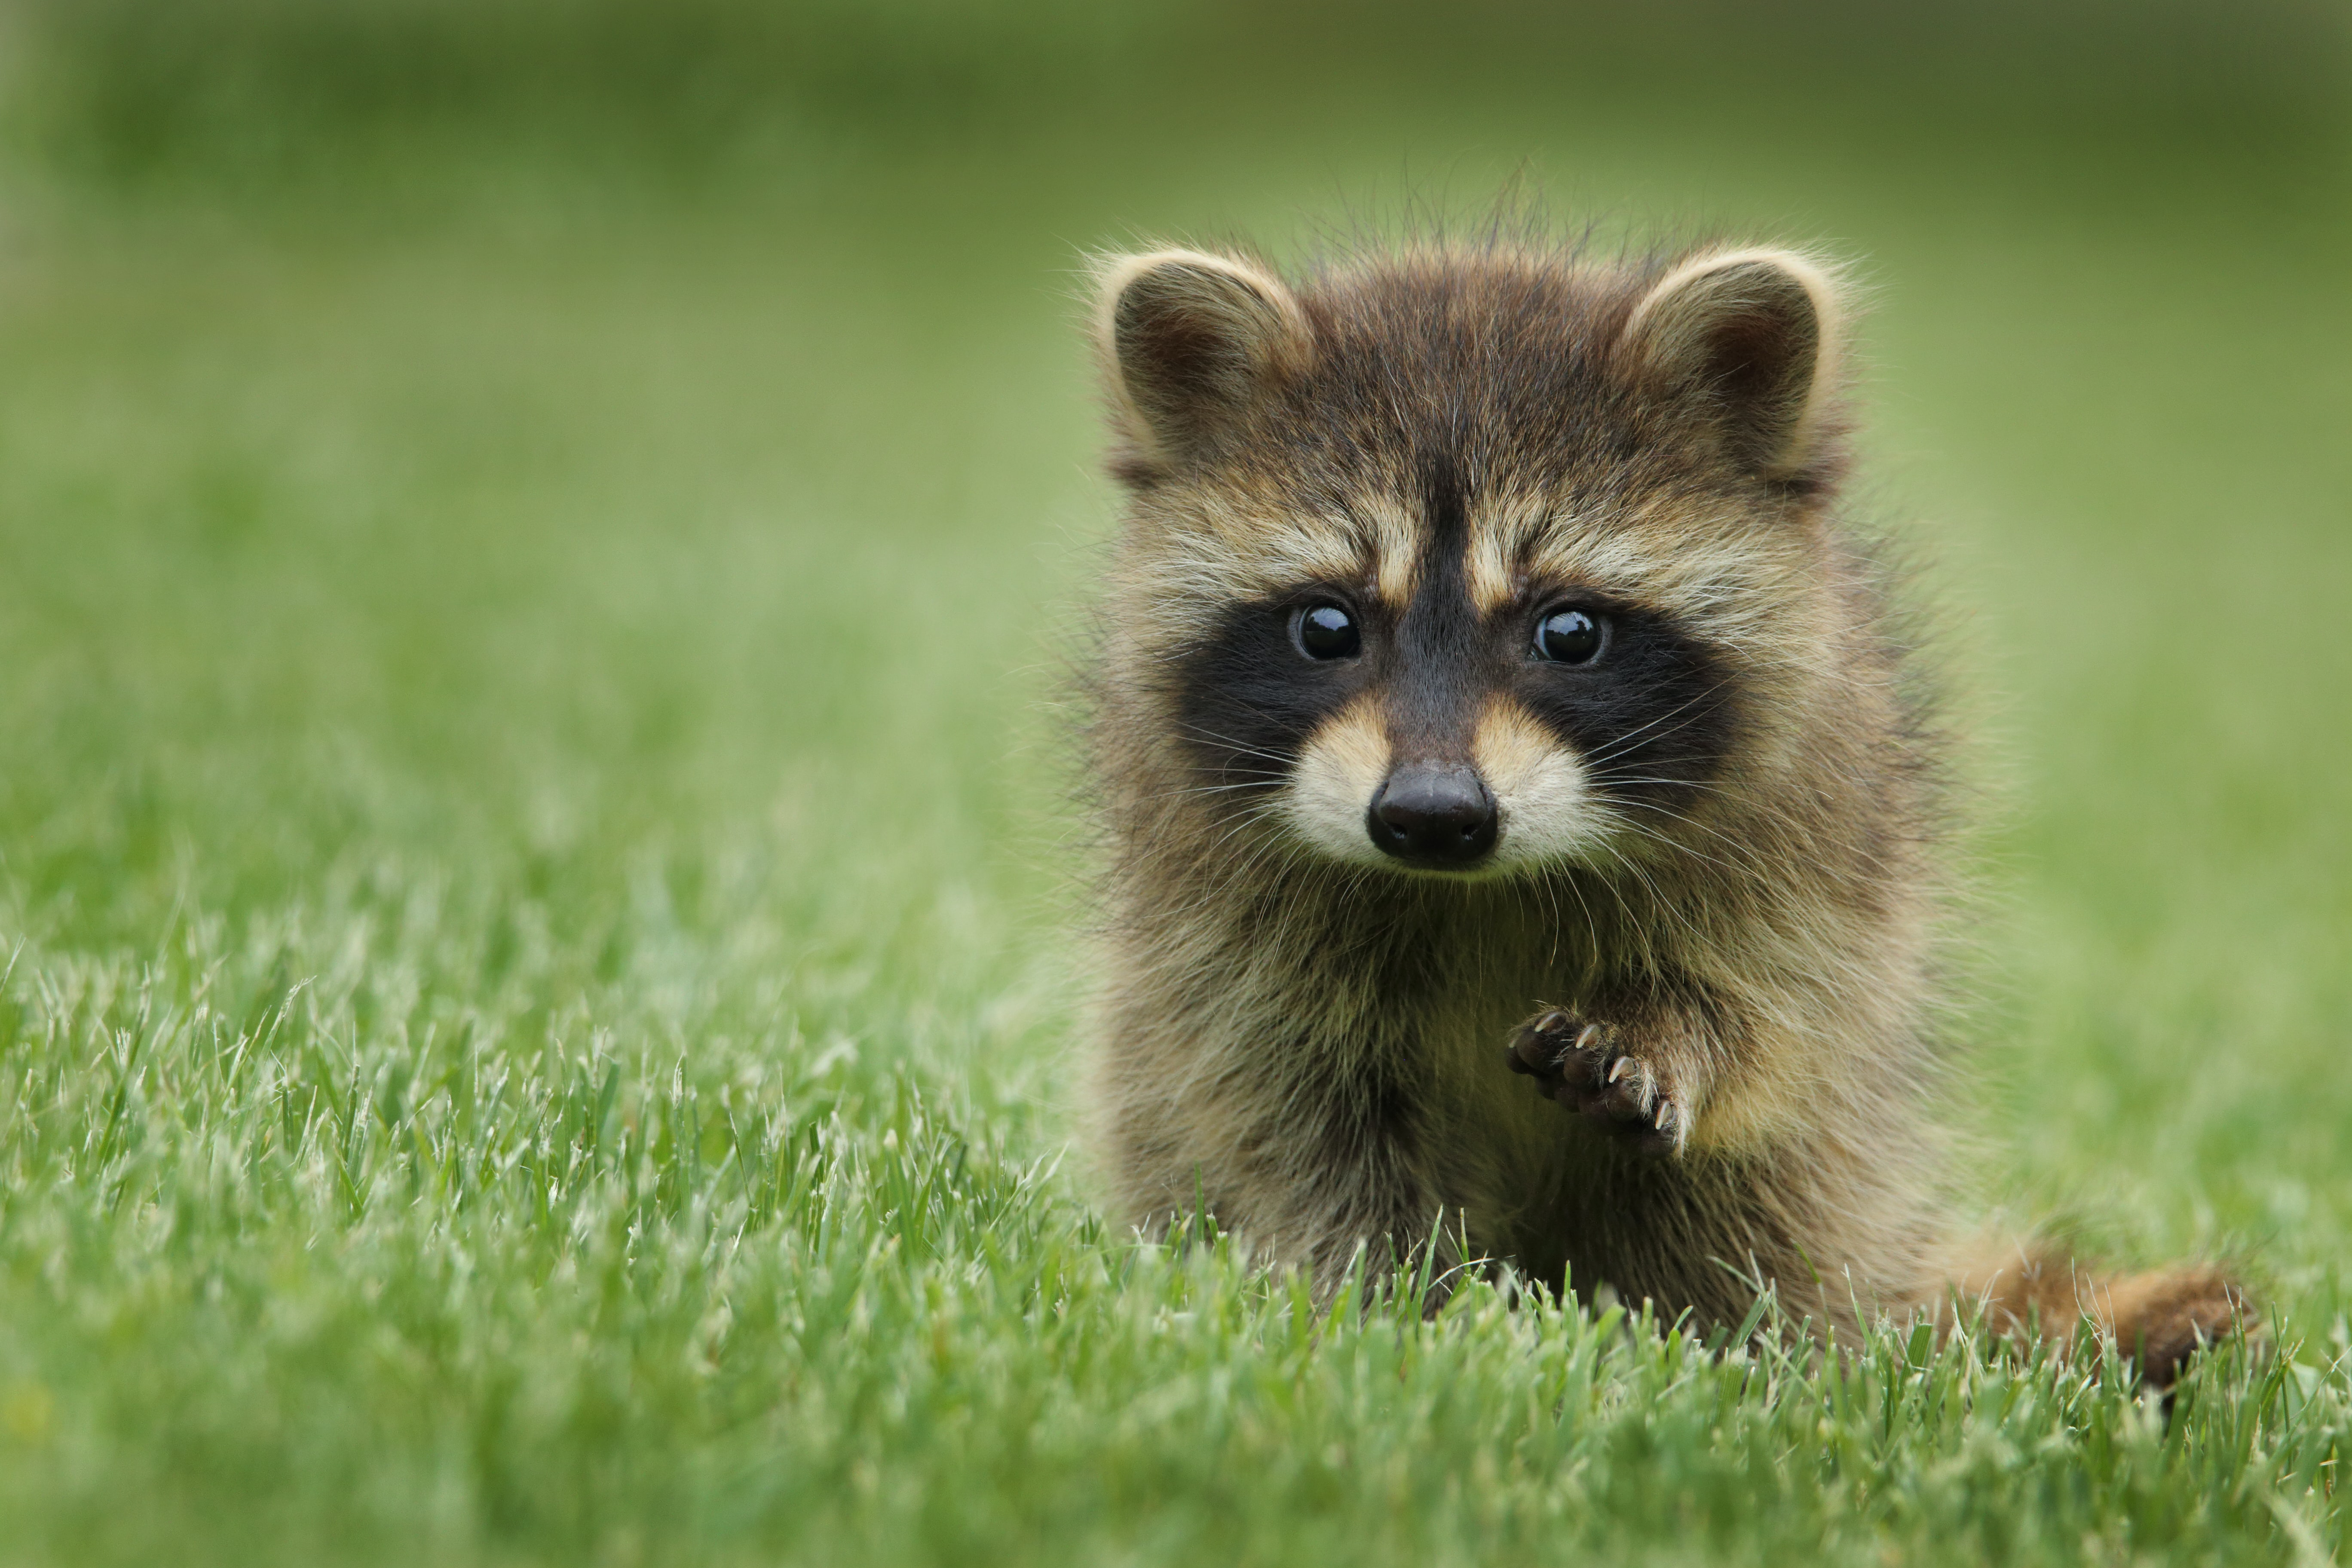 A baby raccoon raising its arm in a patch of grass